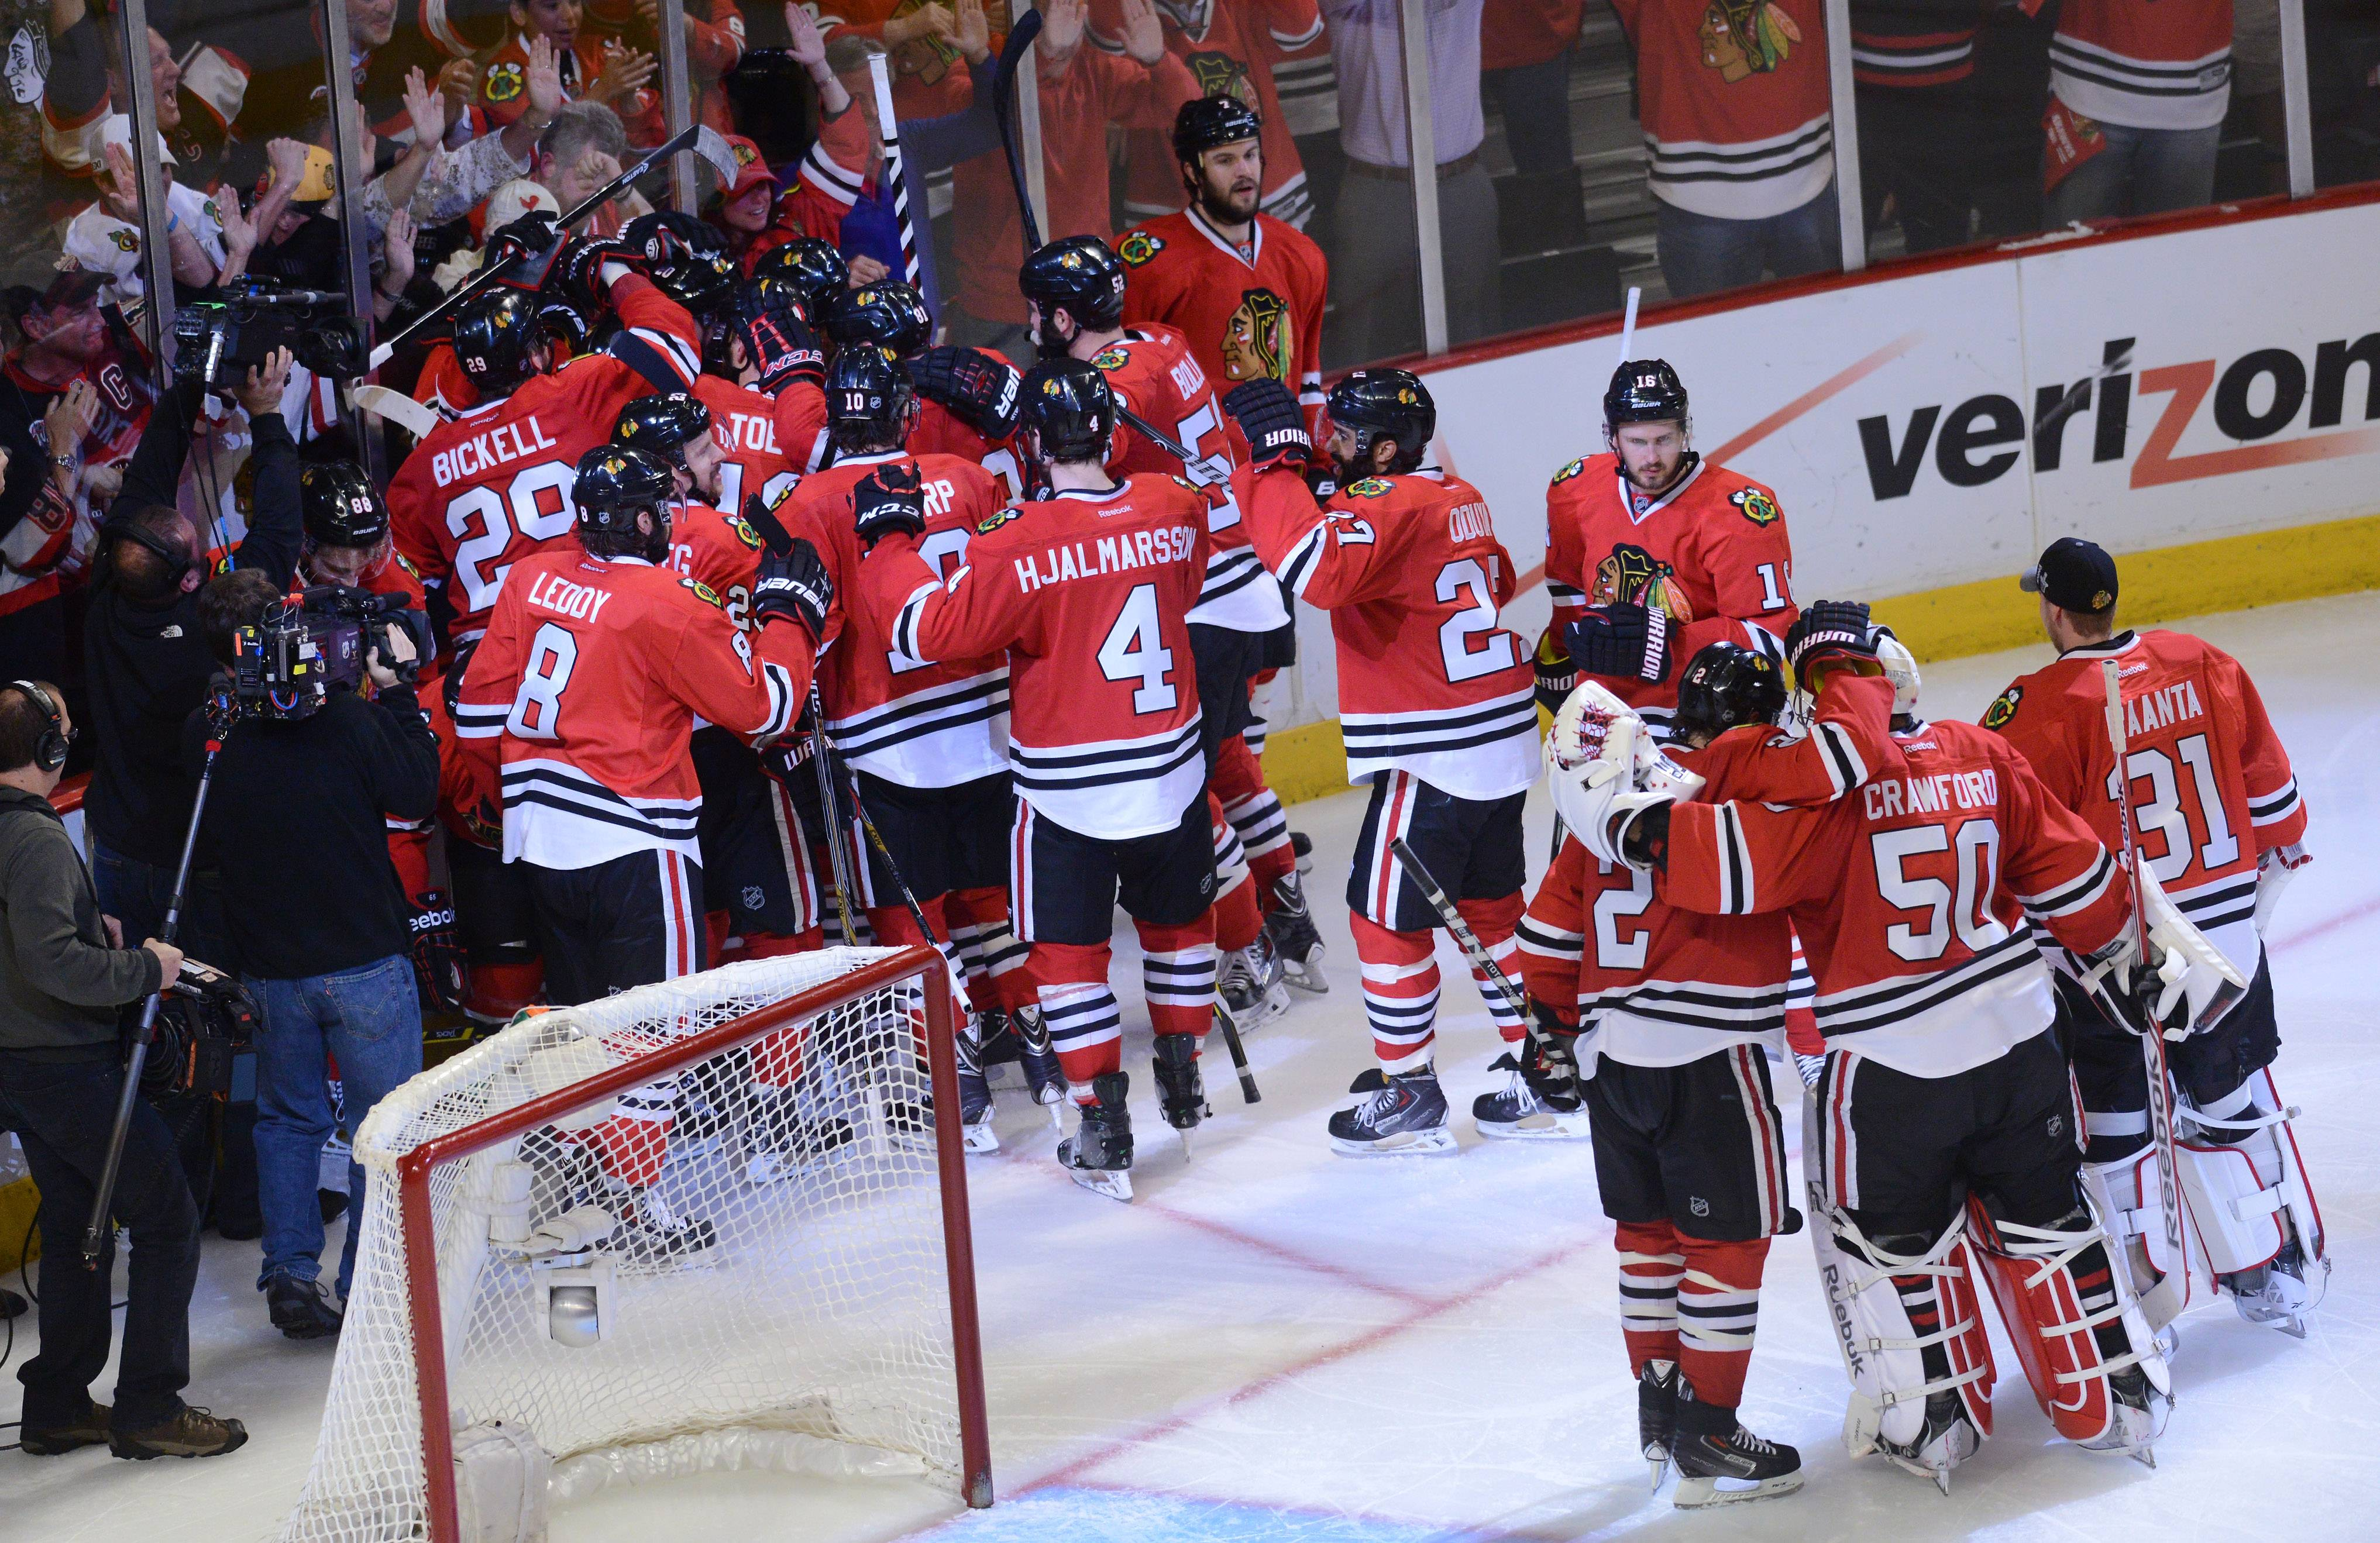 Chicago Blackhawks center Michal Handzus is mobbed after scoring game winner.